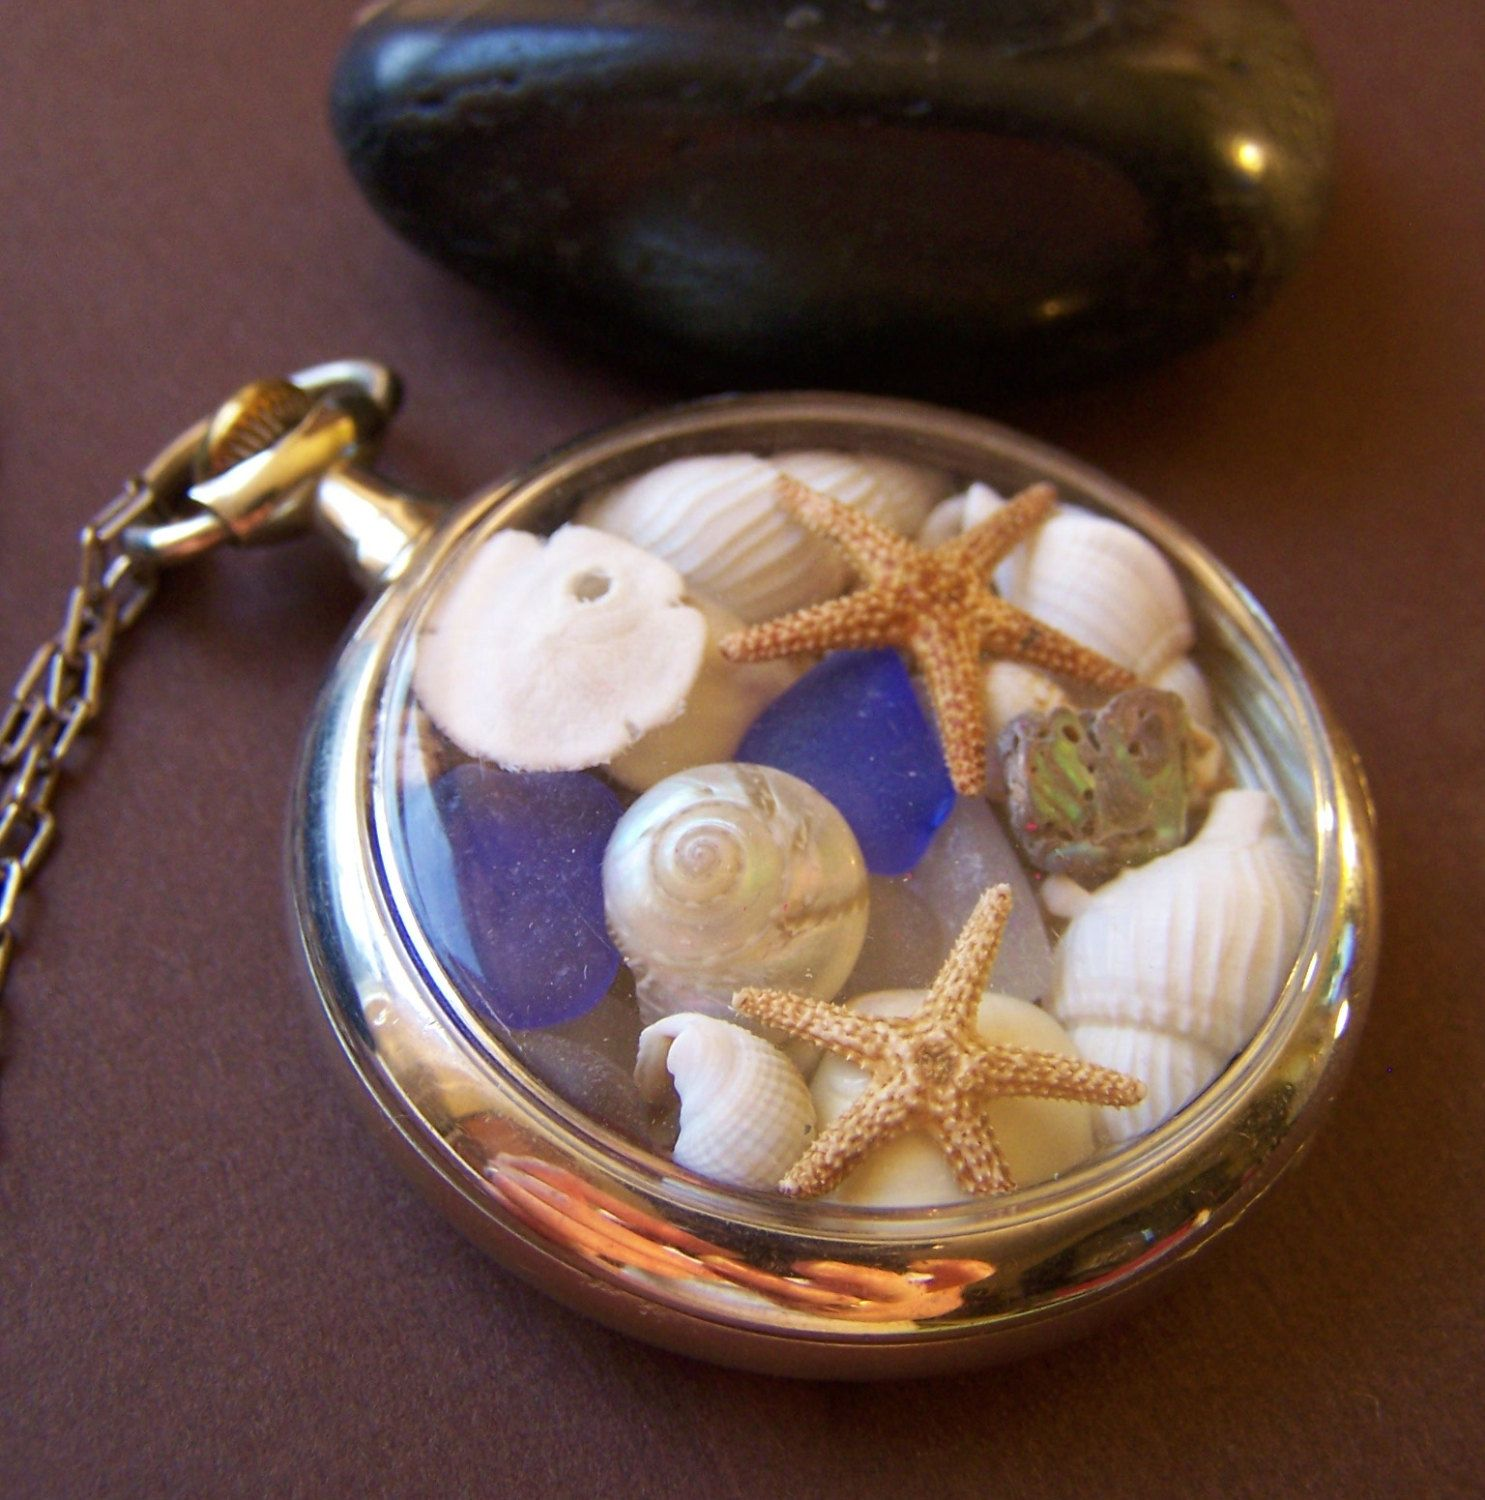 Wallis Sands Ocean Locket - Vintage Pocket Watch Case with Sea Glass Treasures. $139.00, via Etsy.